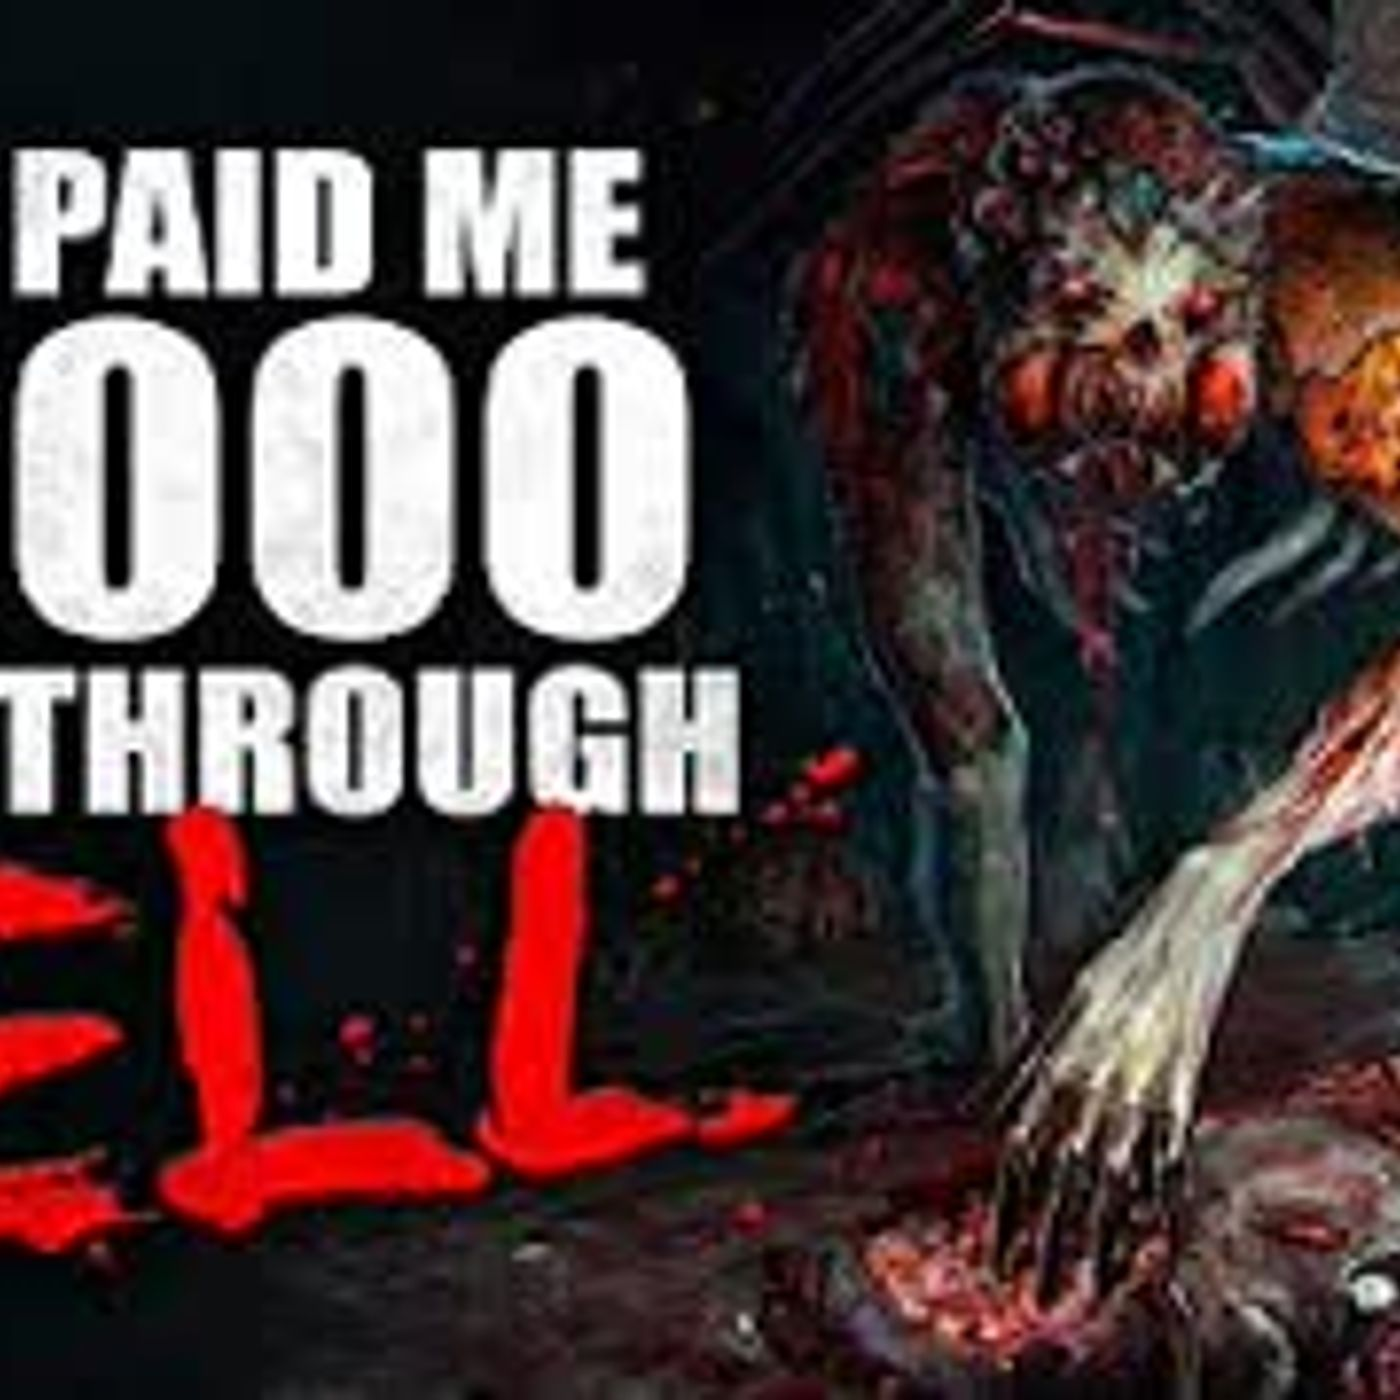 """They paid me $5000 to go through hell"" Creepypasta"